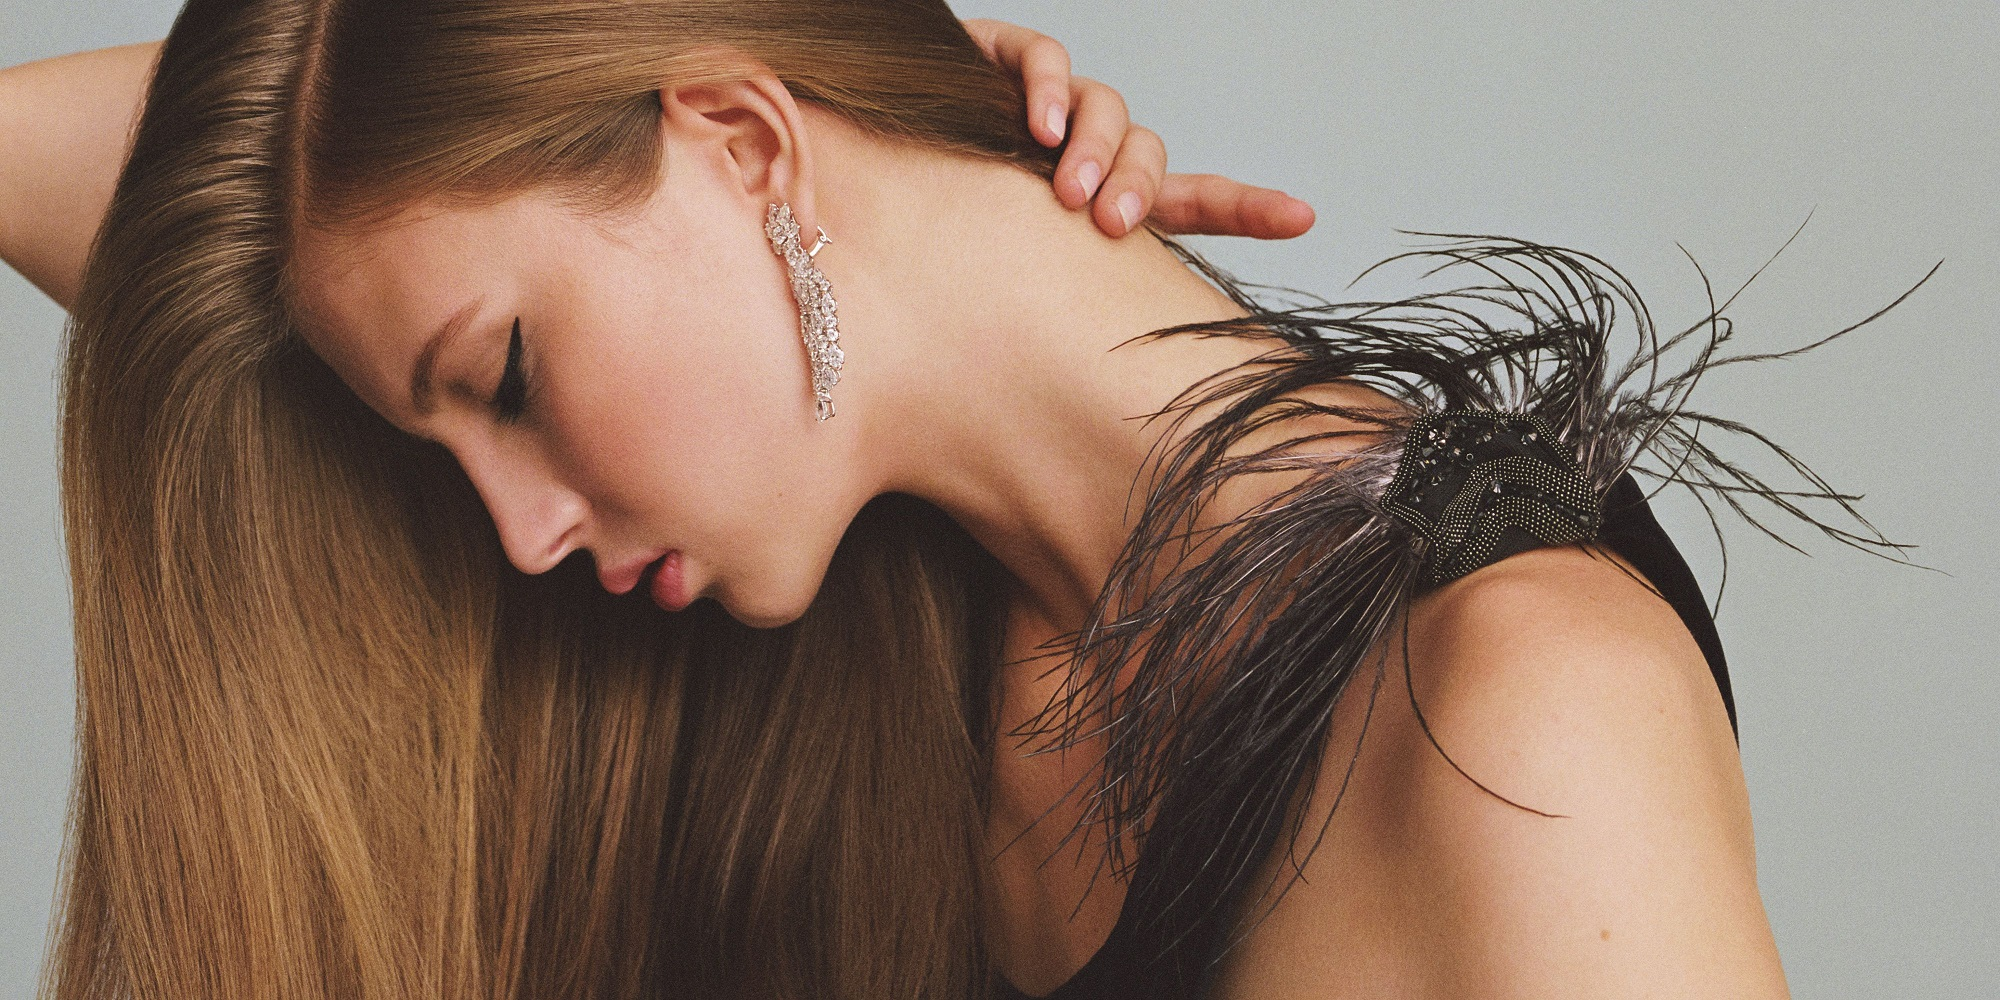 Hairstyles You Can Rock With Hair Extensions